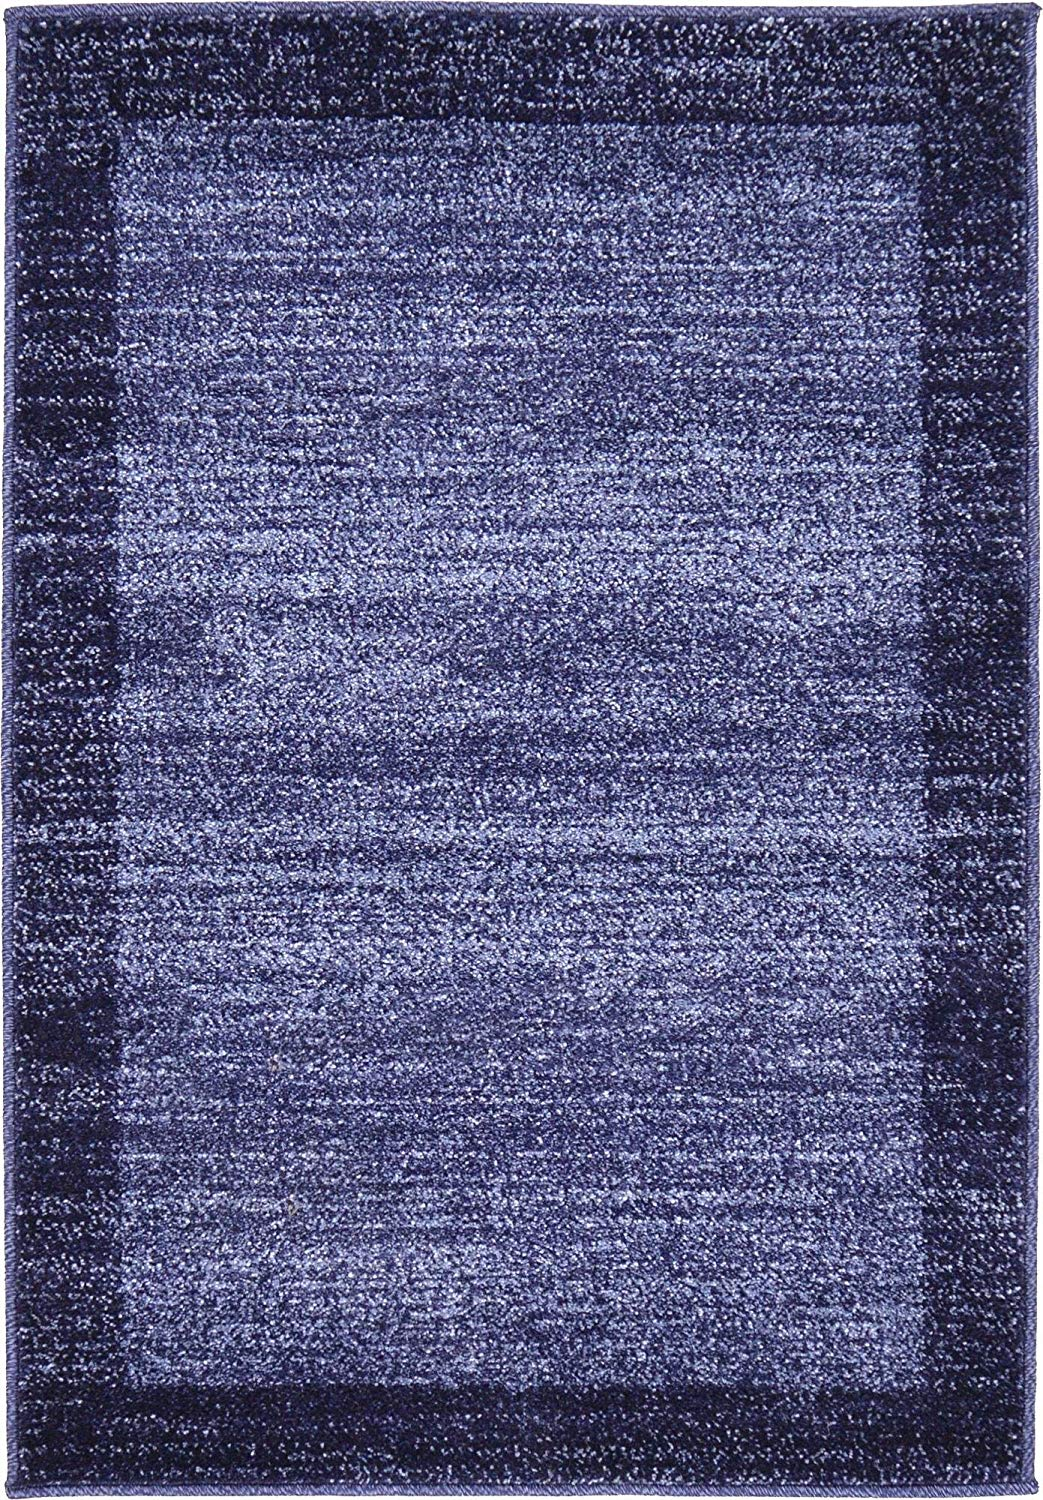 Contemporary Bordered Soft Navy Blue Area Rug